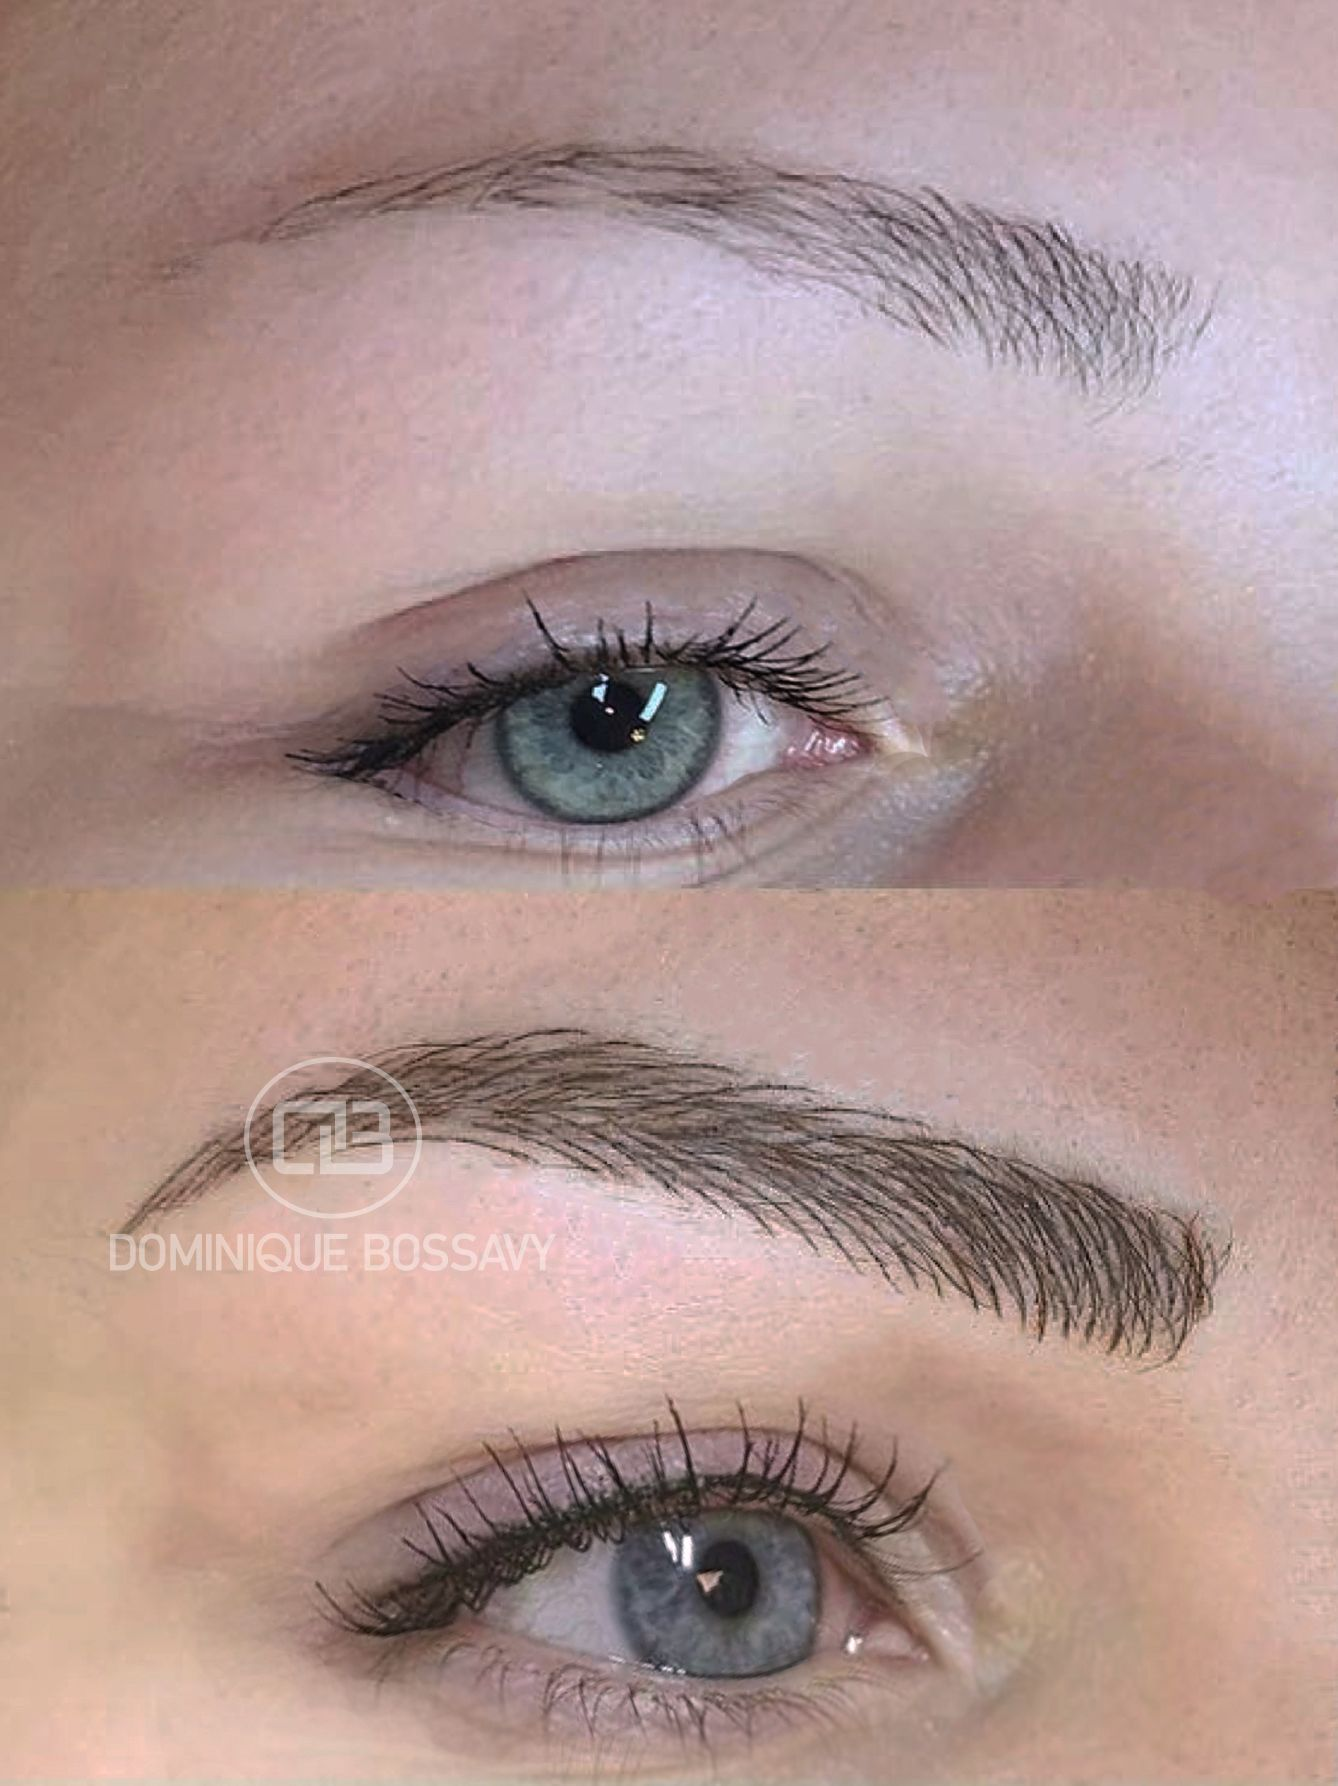 Eyebrows After The Micro Color Infusion Treatment Of Dominique